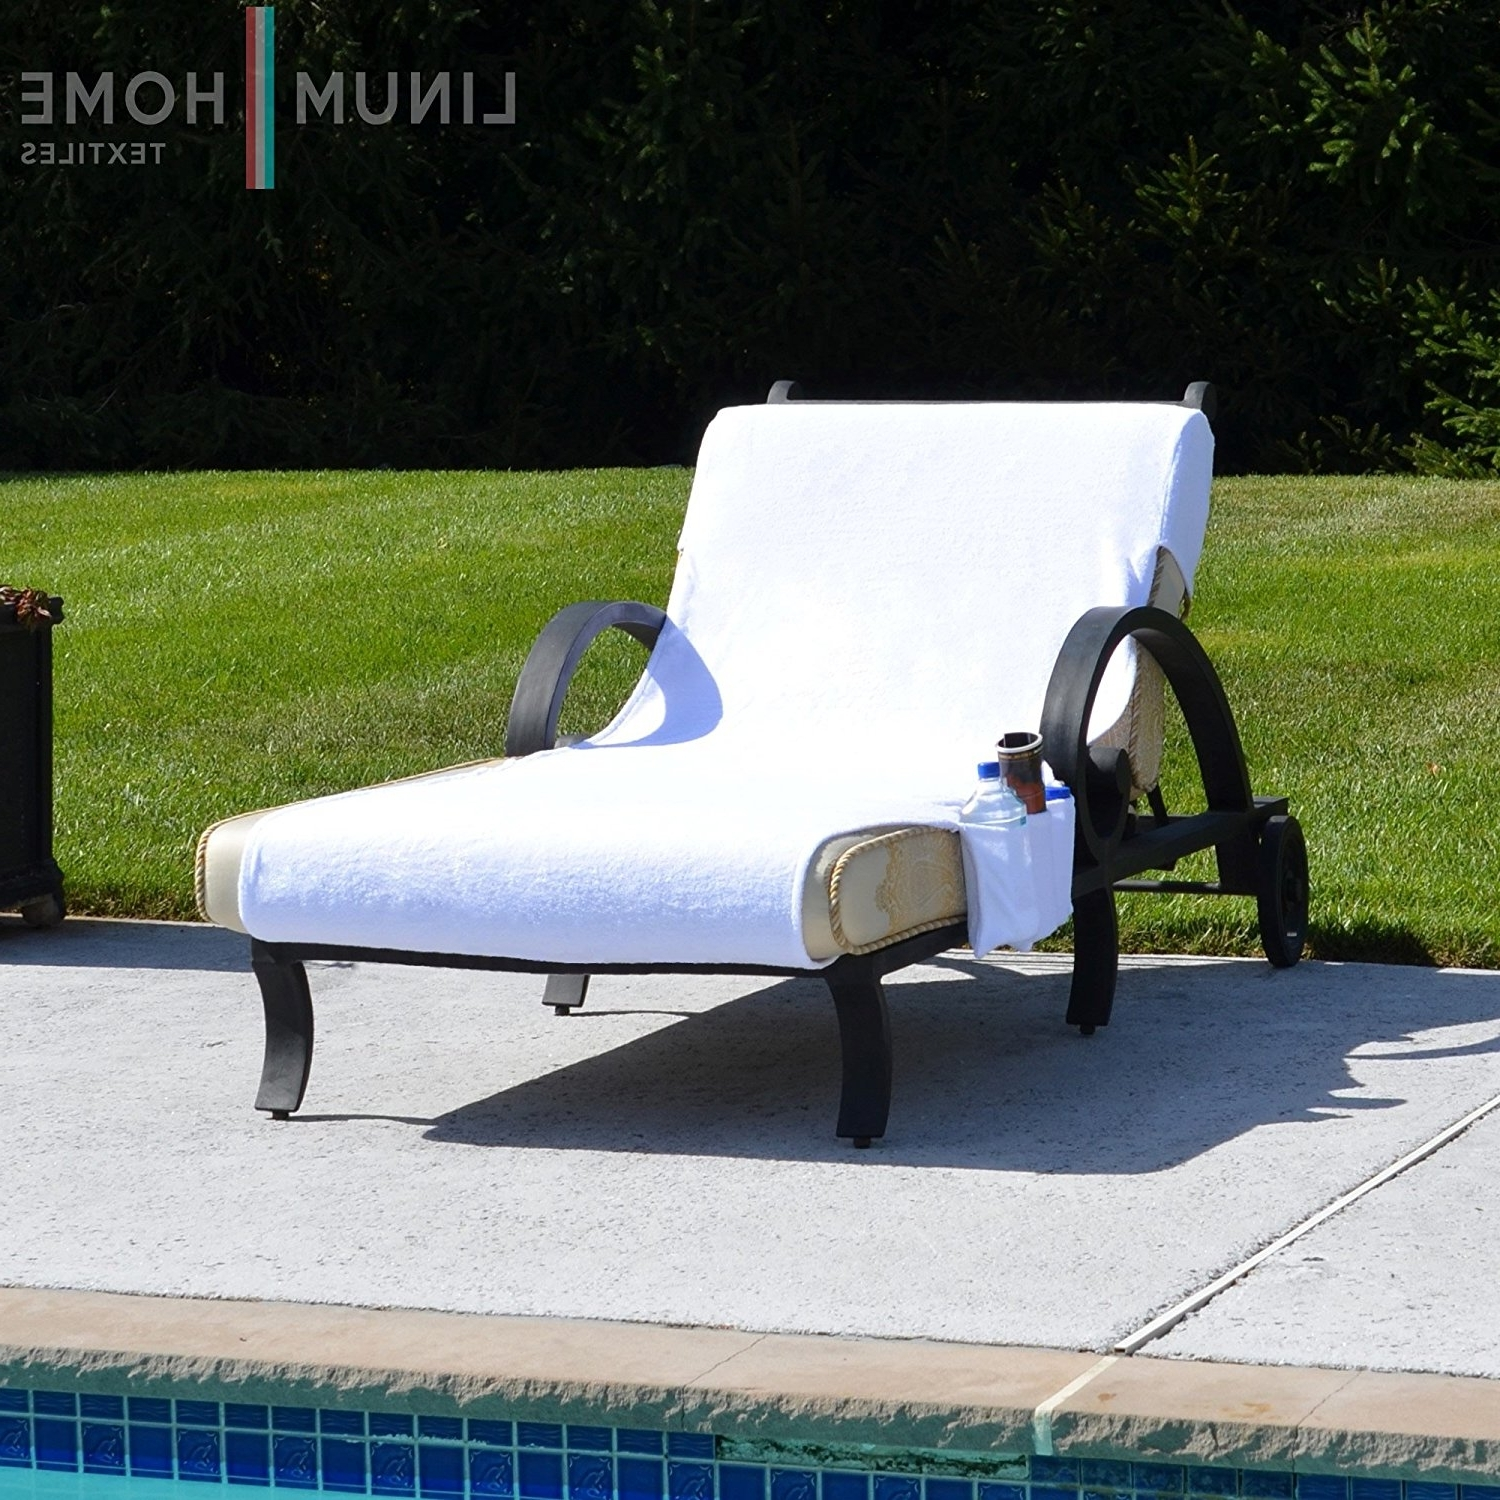 Outdoor Chaise Lounge Covers For Best And Newest Amazon: Linum Home Textiles Cl00 Swp Standard Size Chaise (View 14 of 15)